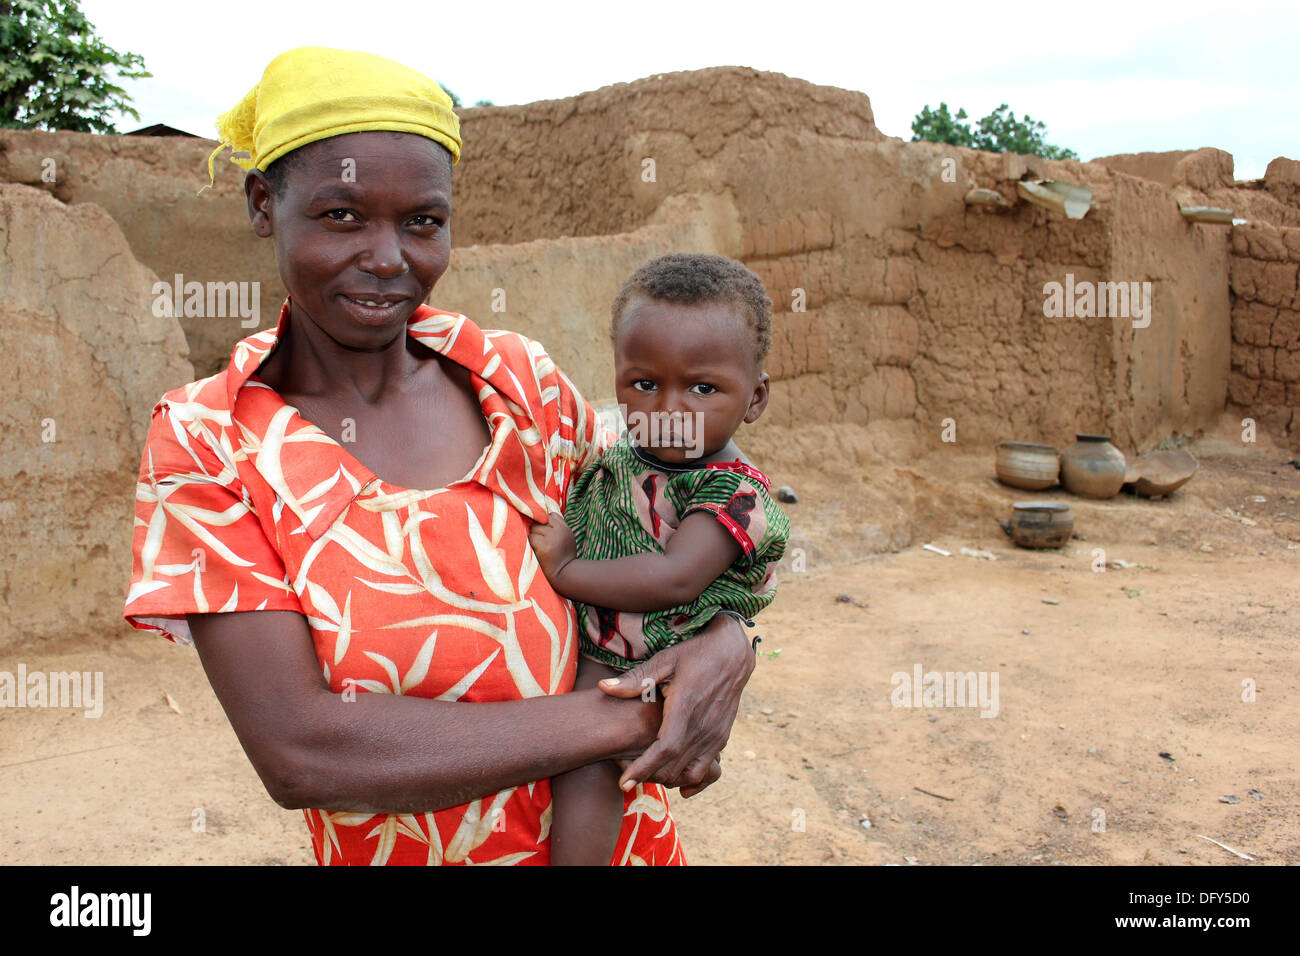 Mother And Baby Of The Lobi Ethnic Group of Ghana and Burkina Faso - Stock Image